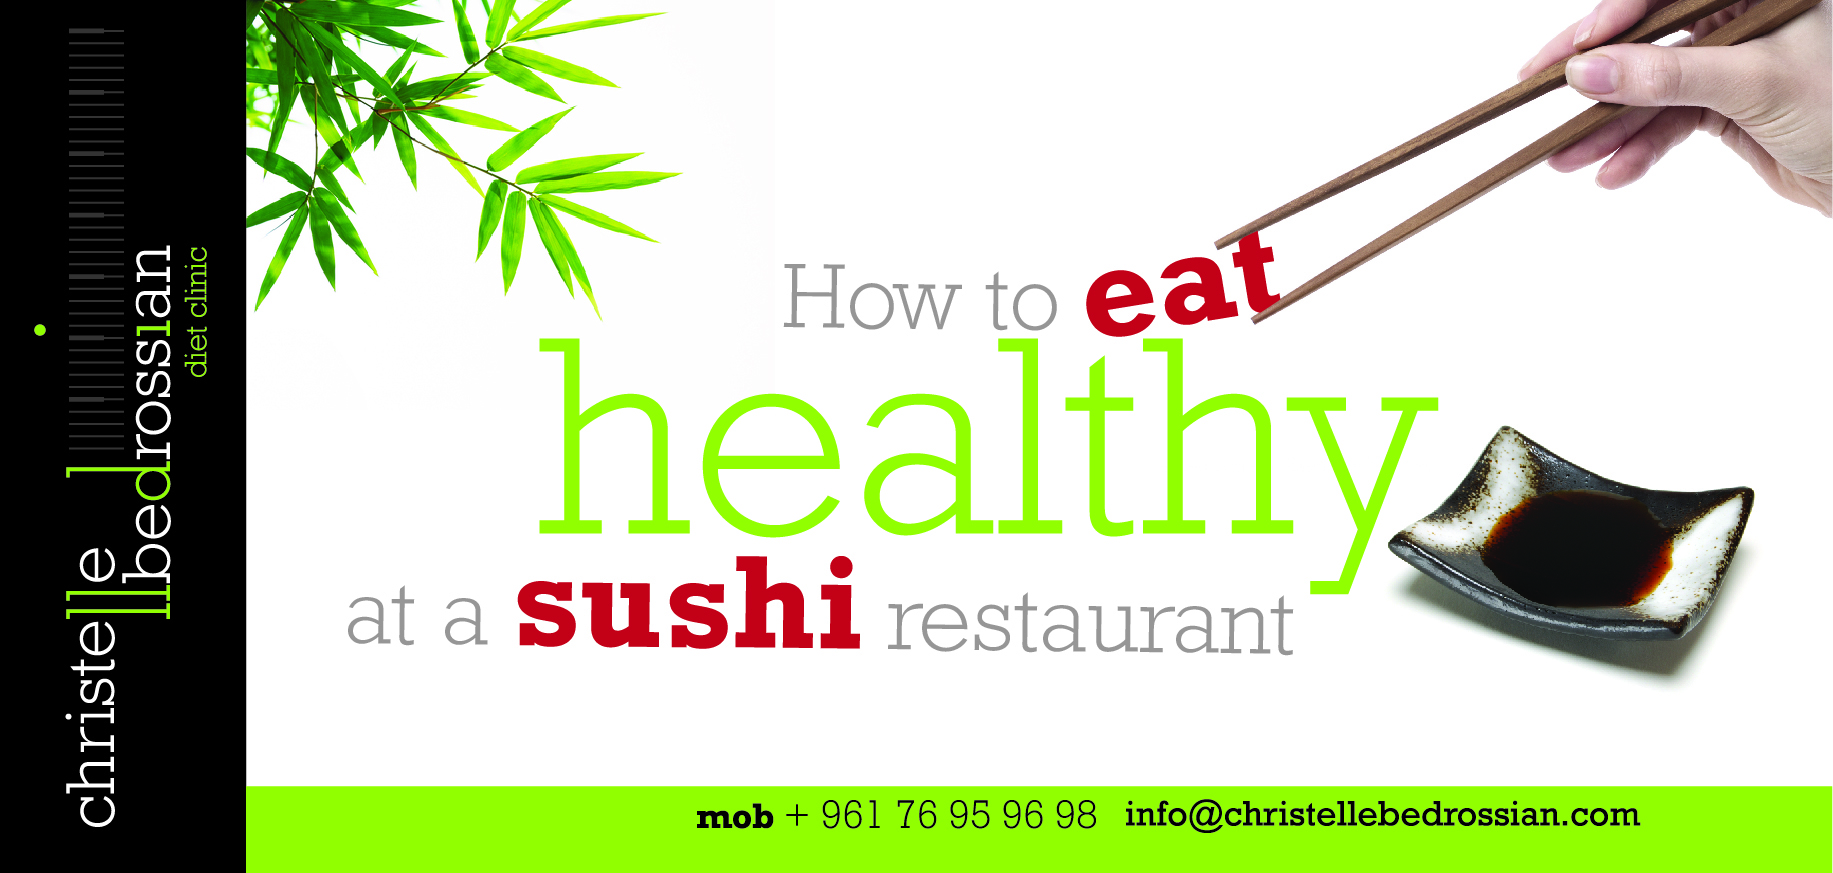 safest fish to eat sushi lose weight